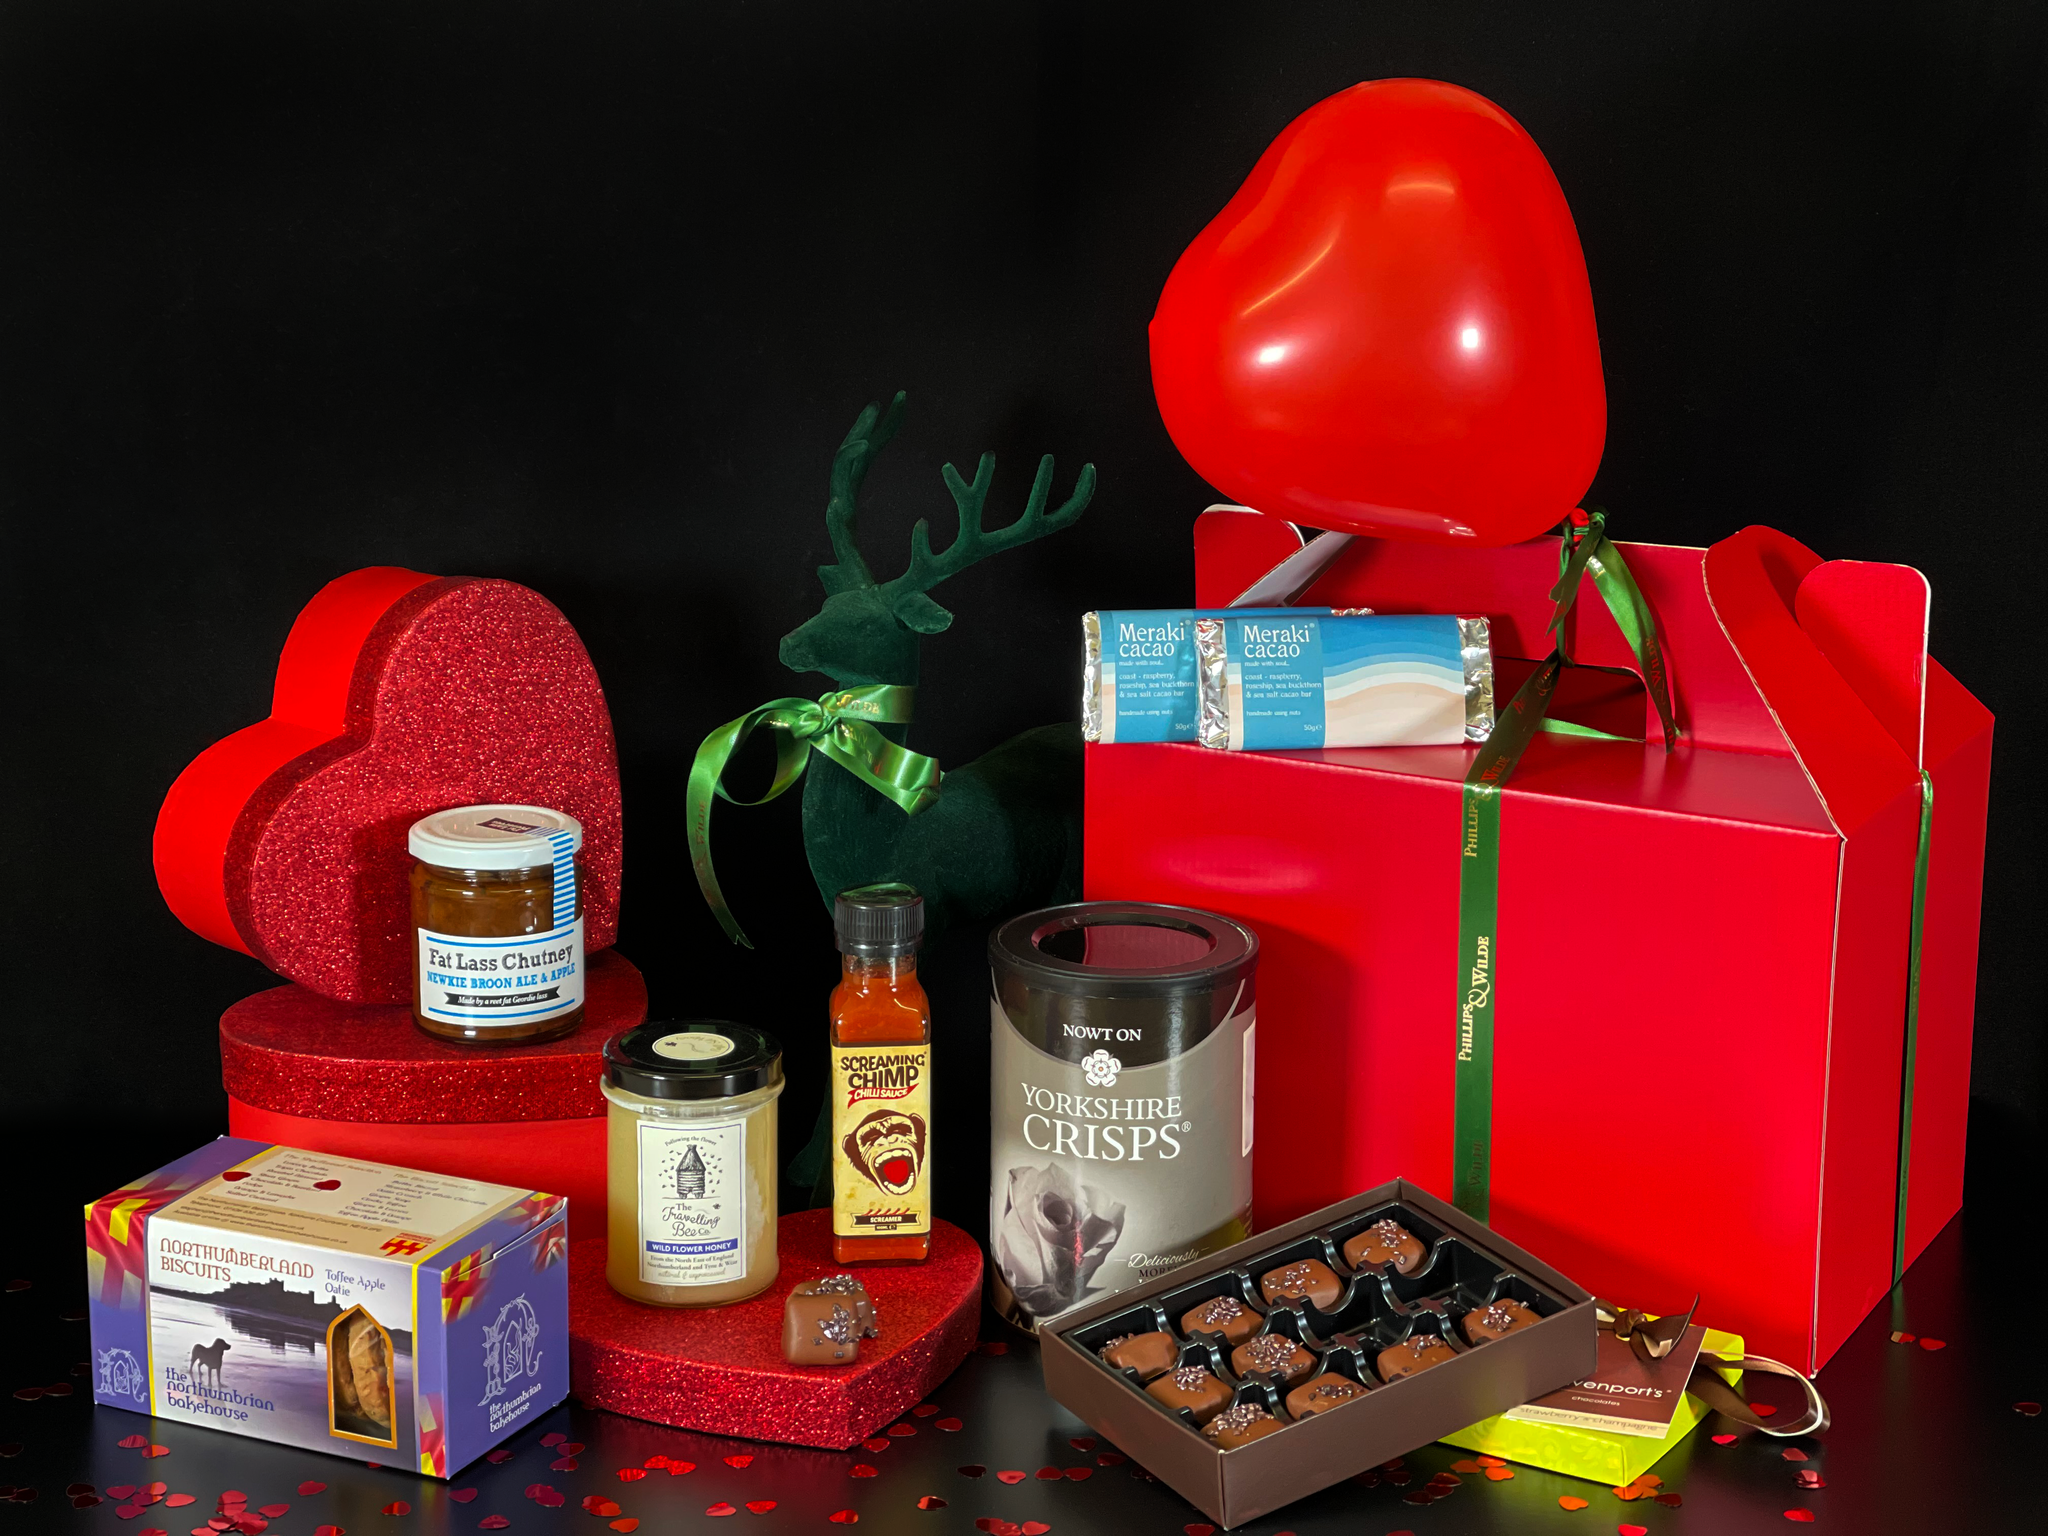 Phillips & Wilde: Valentines Gift Box